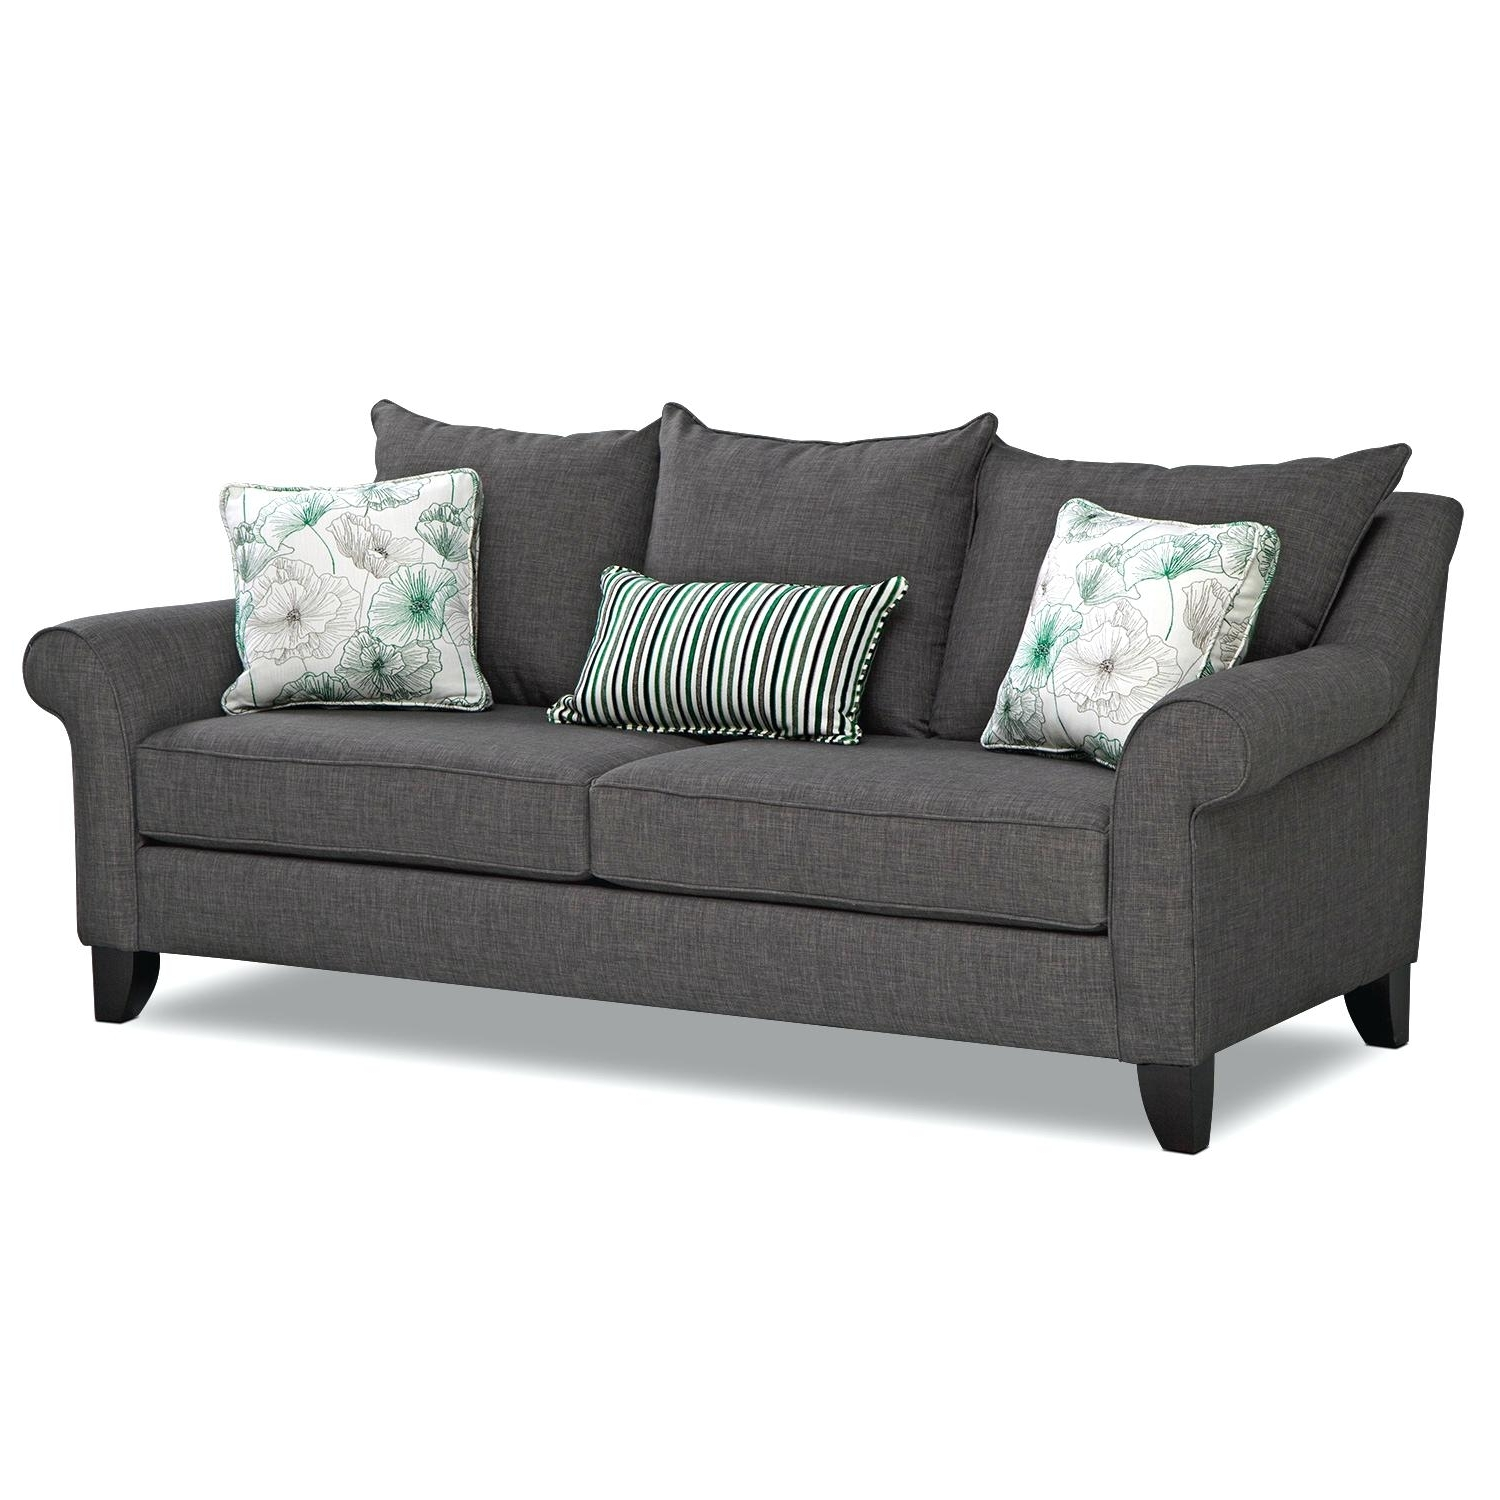 City Furniture Sofa Beds – 4parkar For Most Recent City Sofa Beds (View 10 of 20)